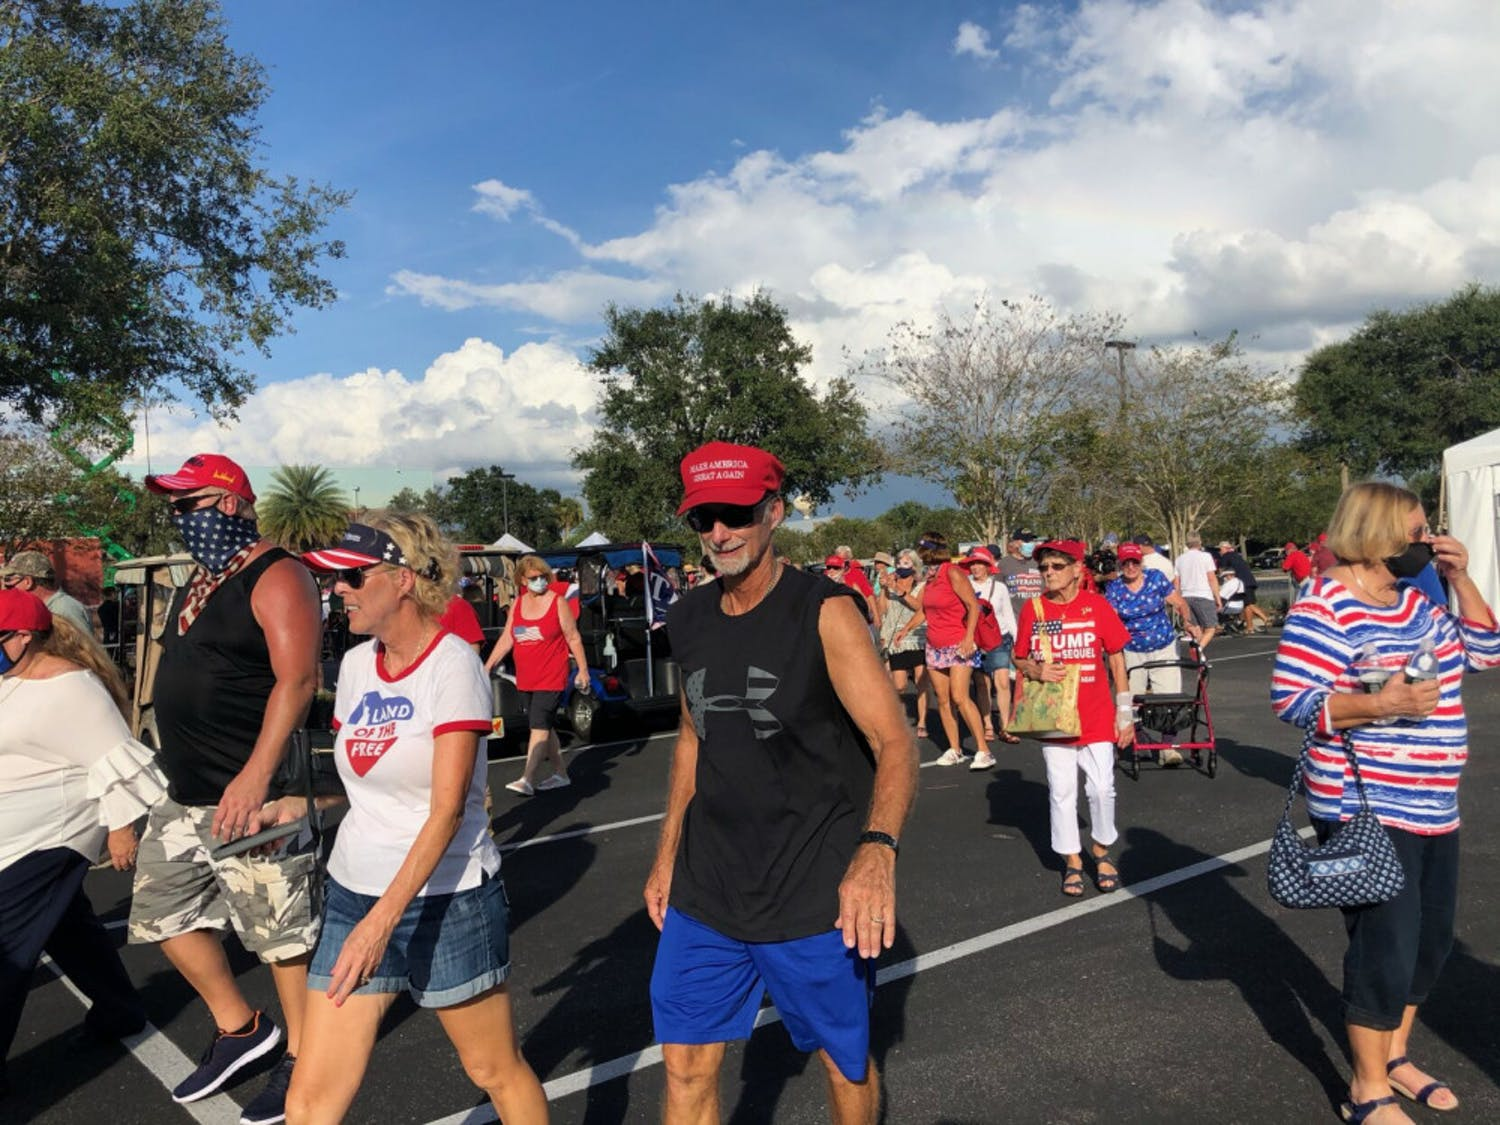 Hundreds of people gathered at The Villages, a massive retirement community west of Orlando, on Saturday to hear Vice President Mike Pence's campaign speech.